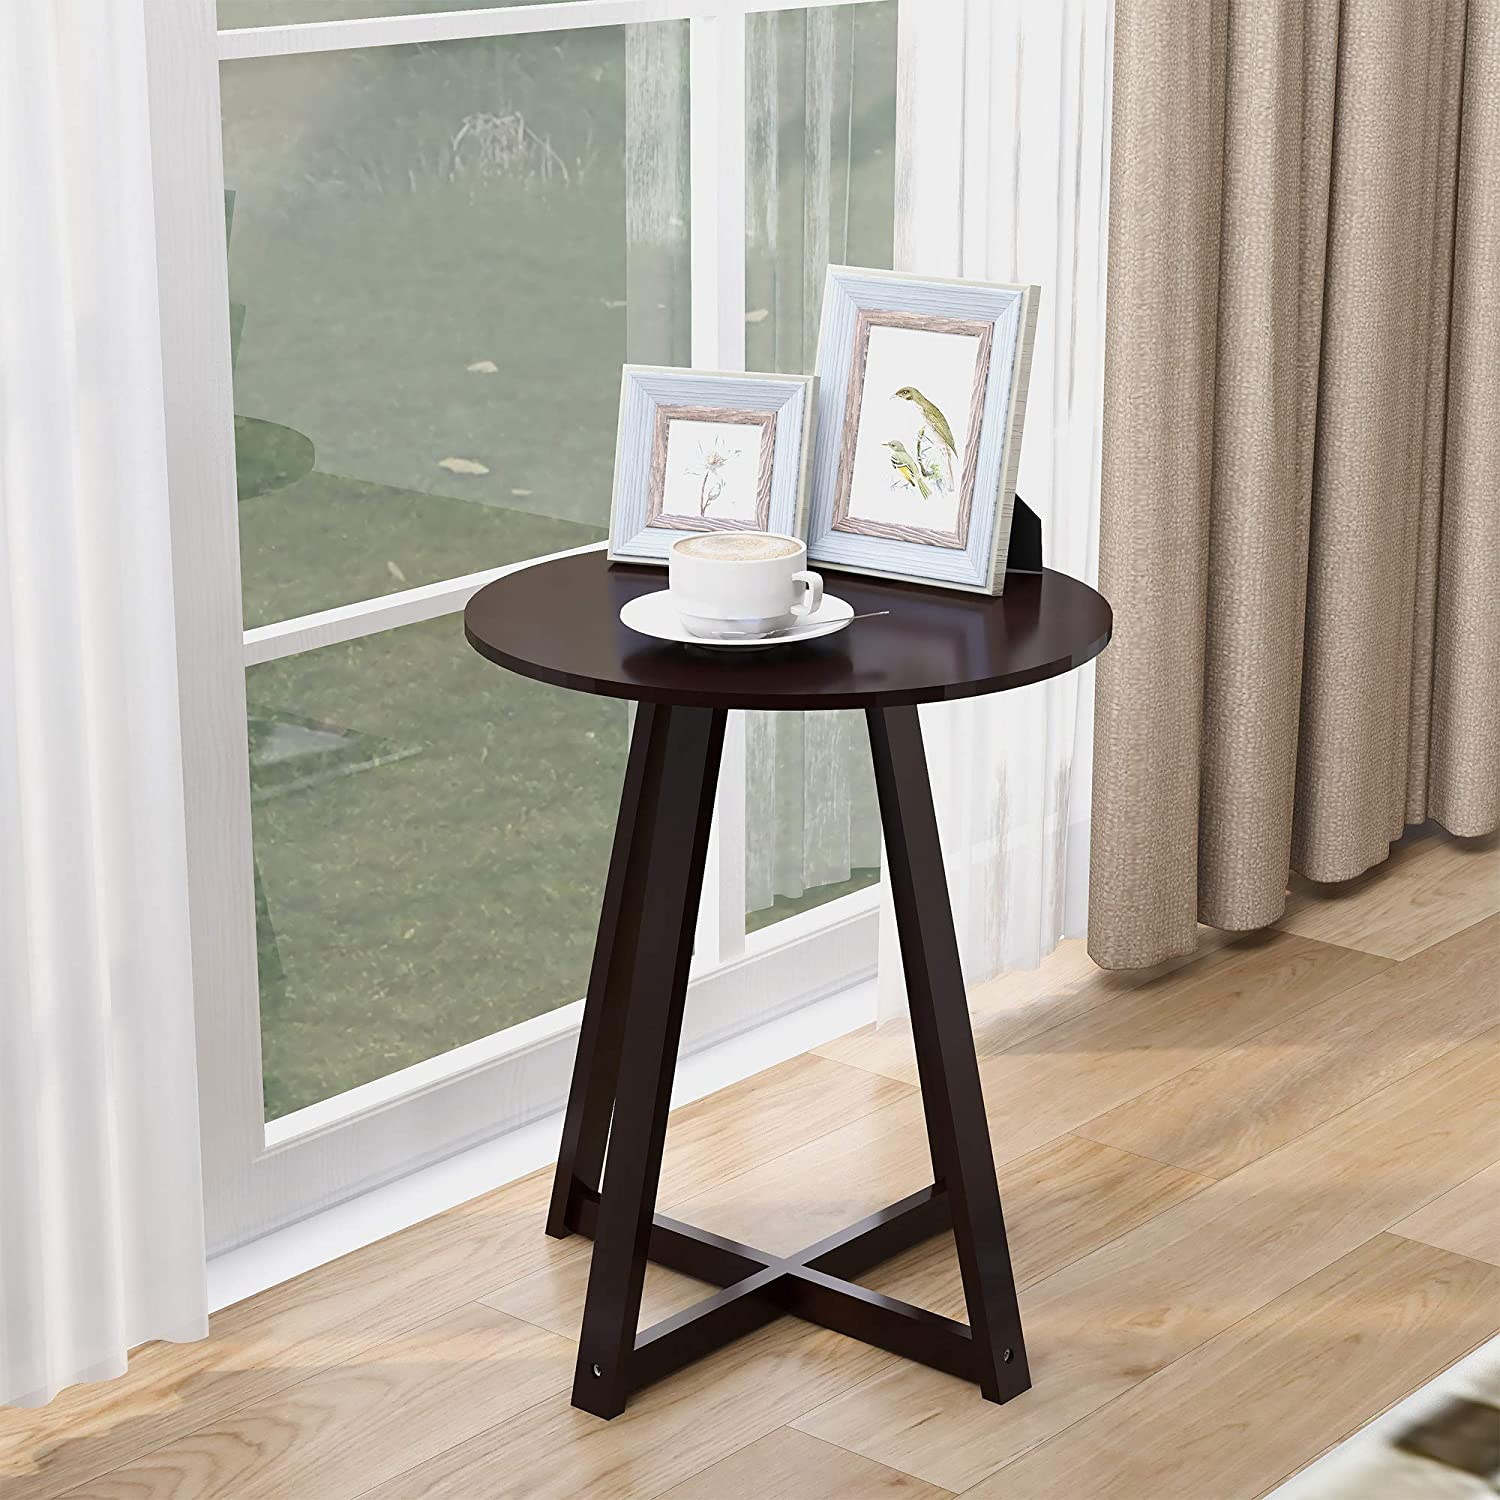 hongxinq End Table Small Online limited product and Round Sacramento Mall Coffee L Le Sharp with